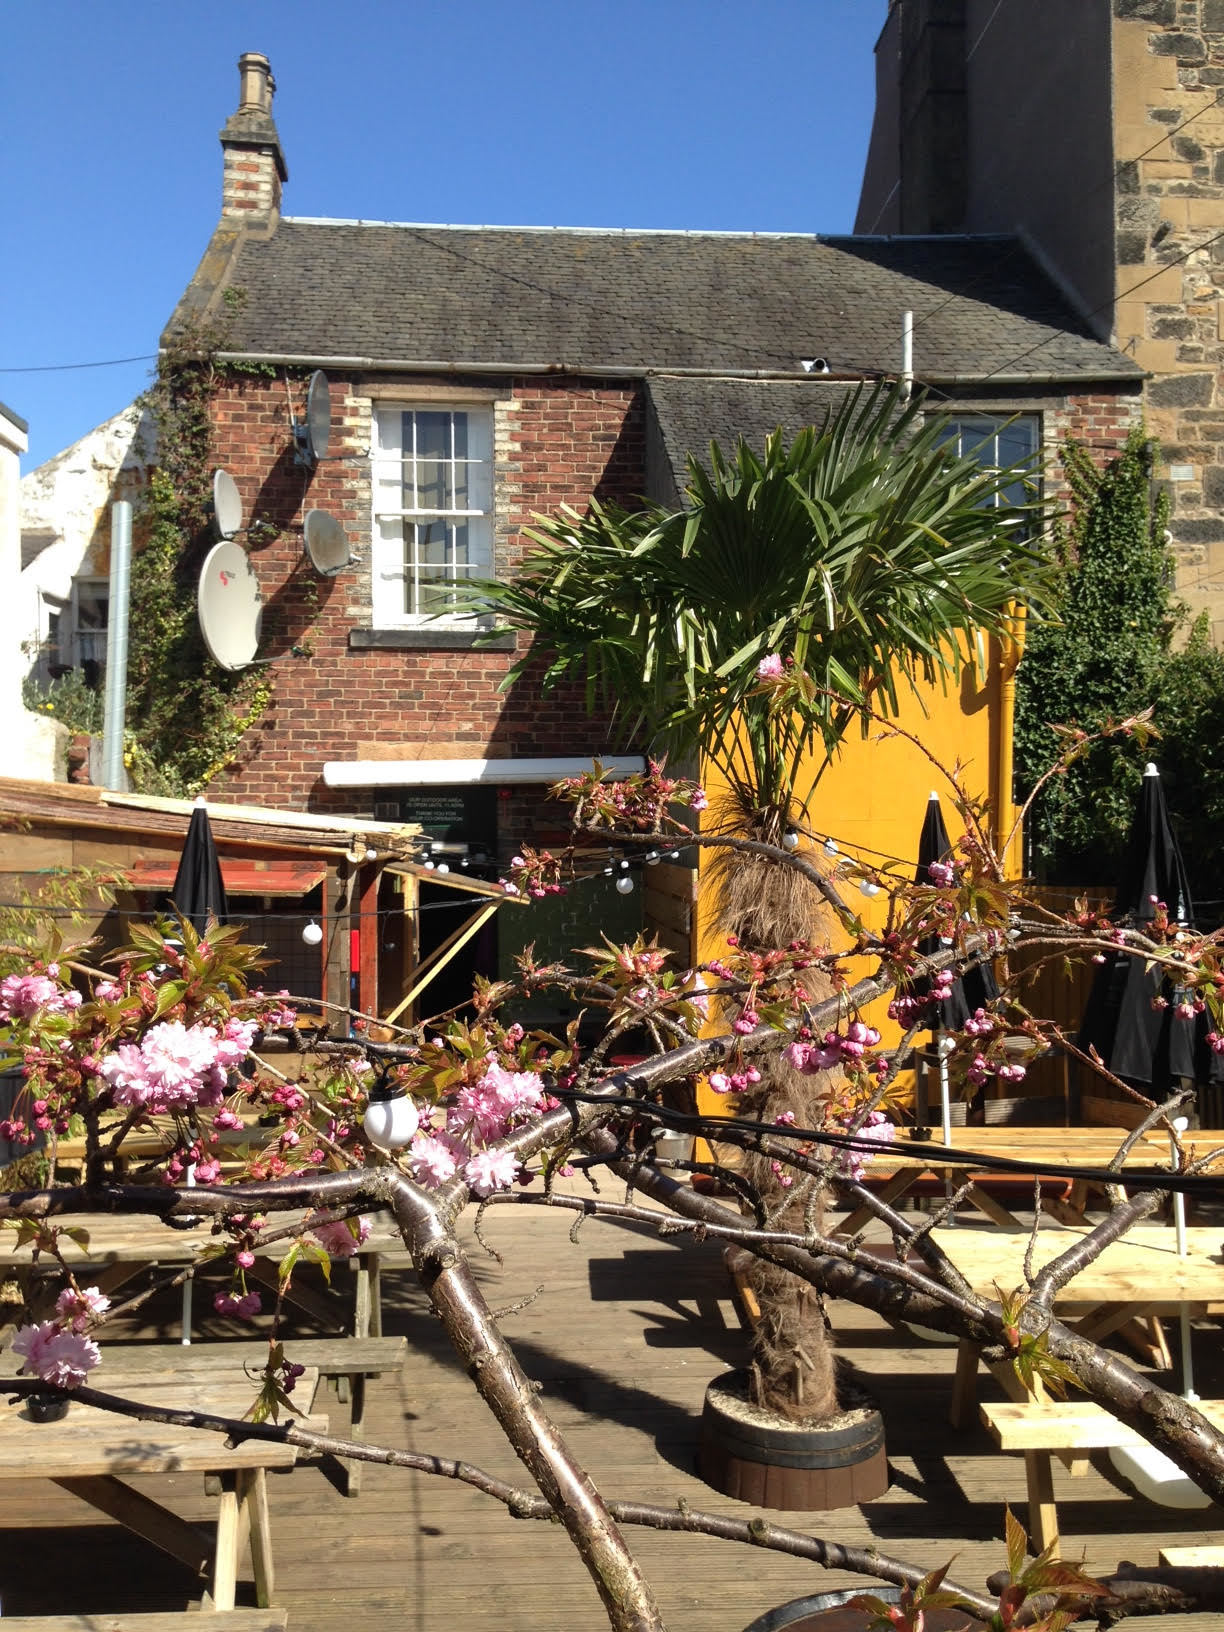 The best beer gardens in Edinburgh